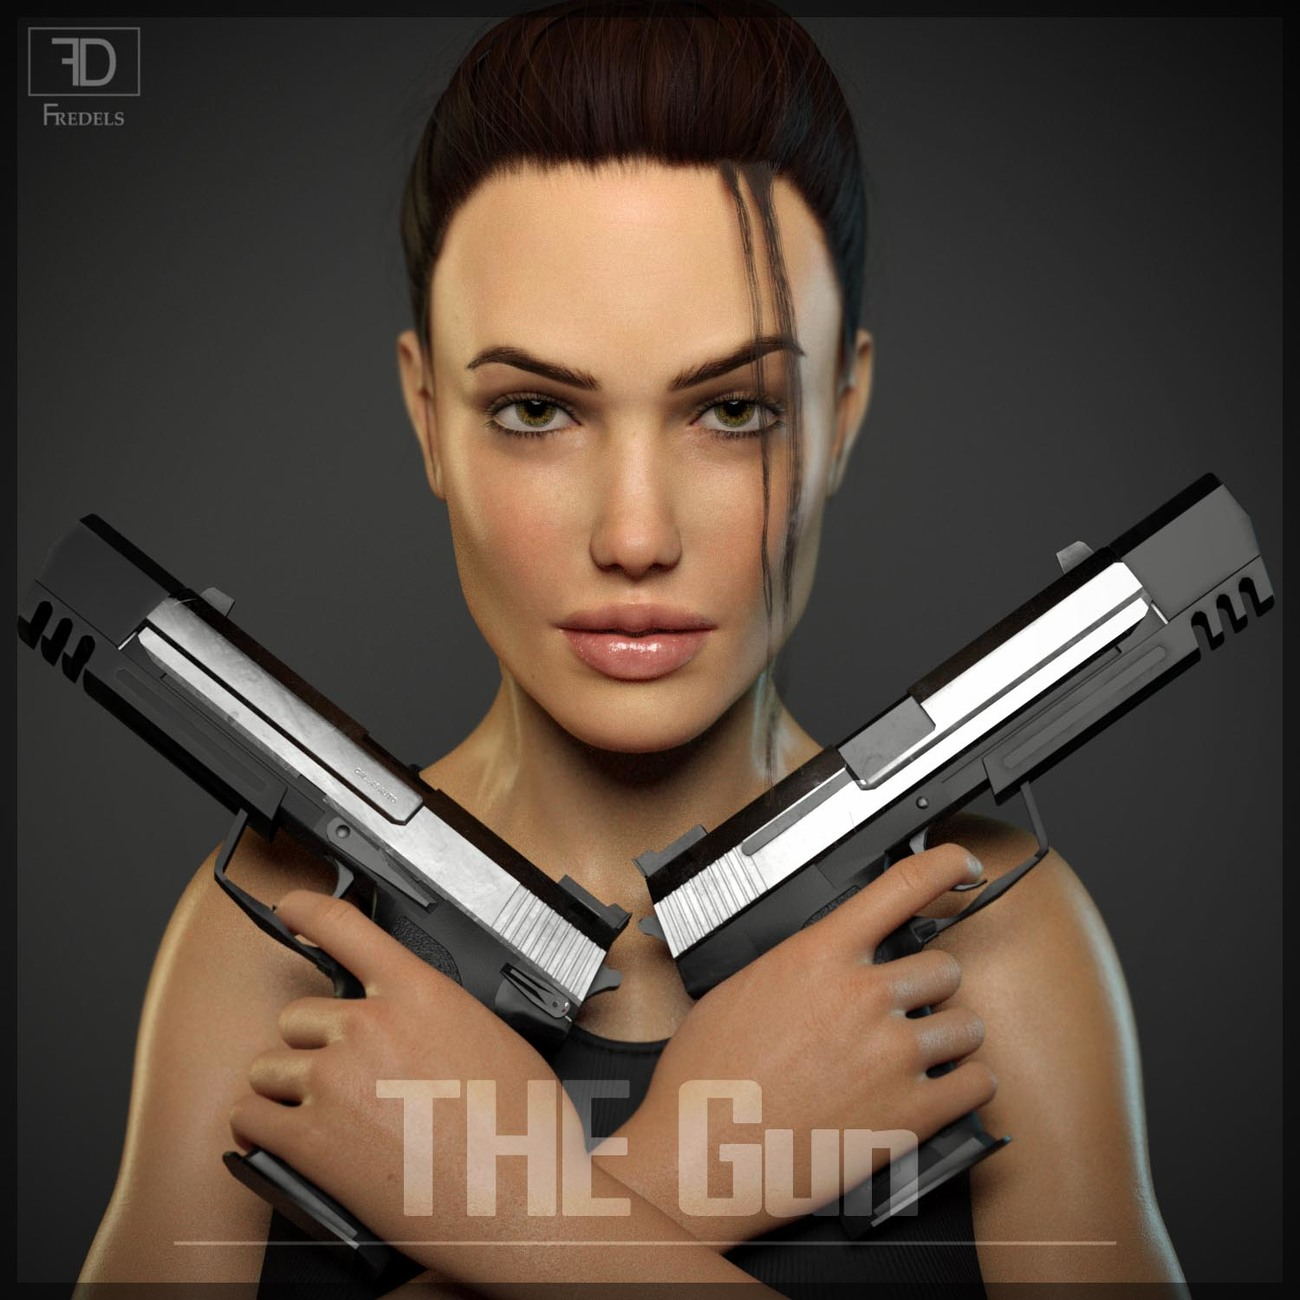 THE Gun, now in store!